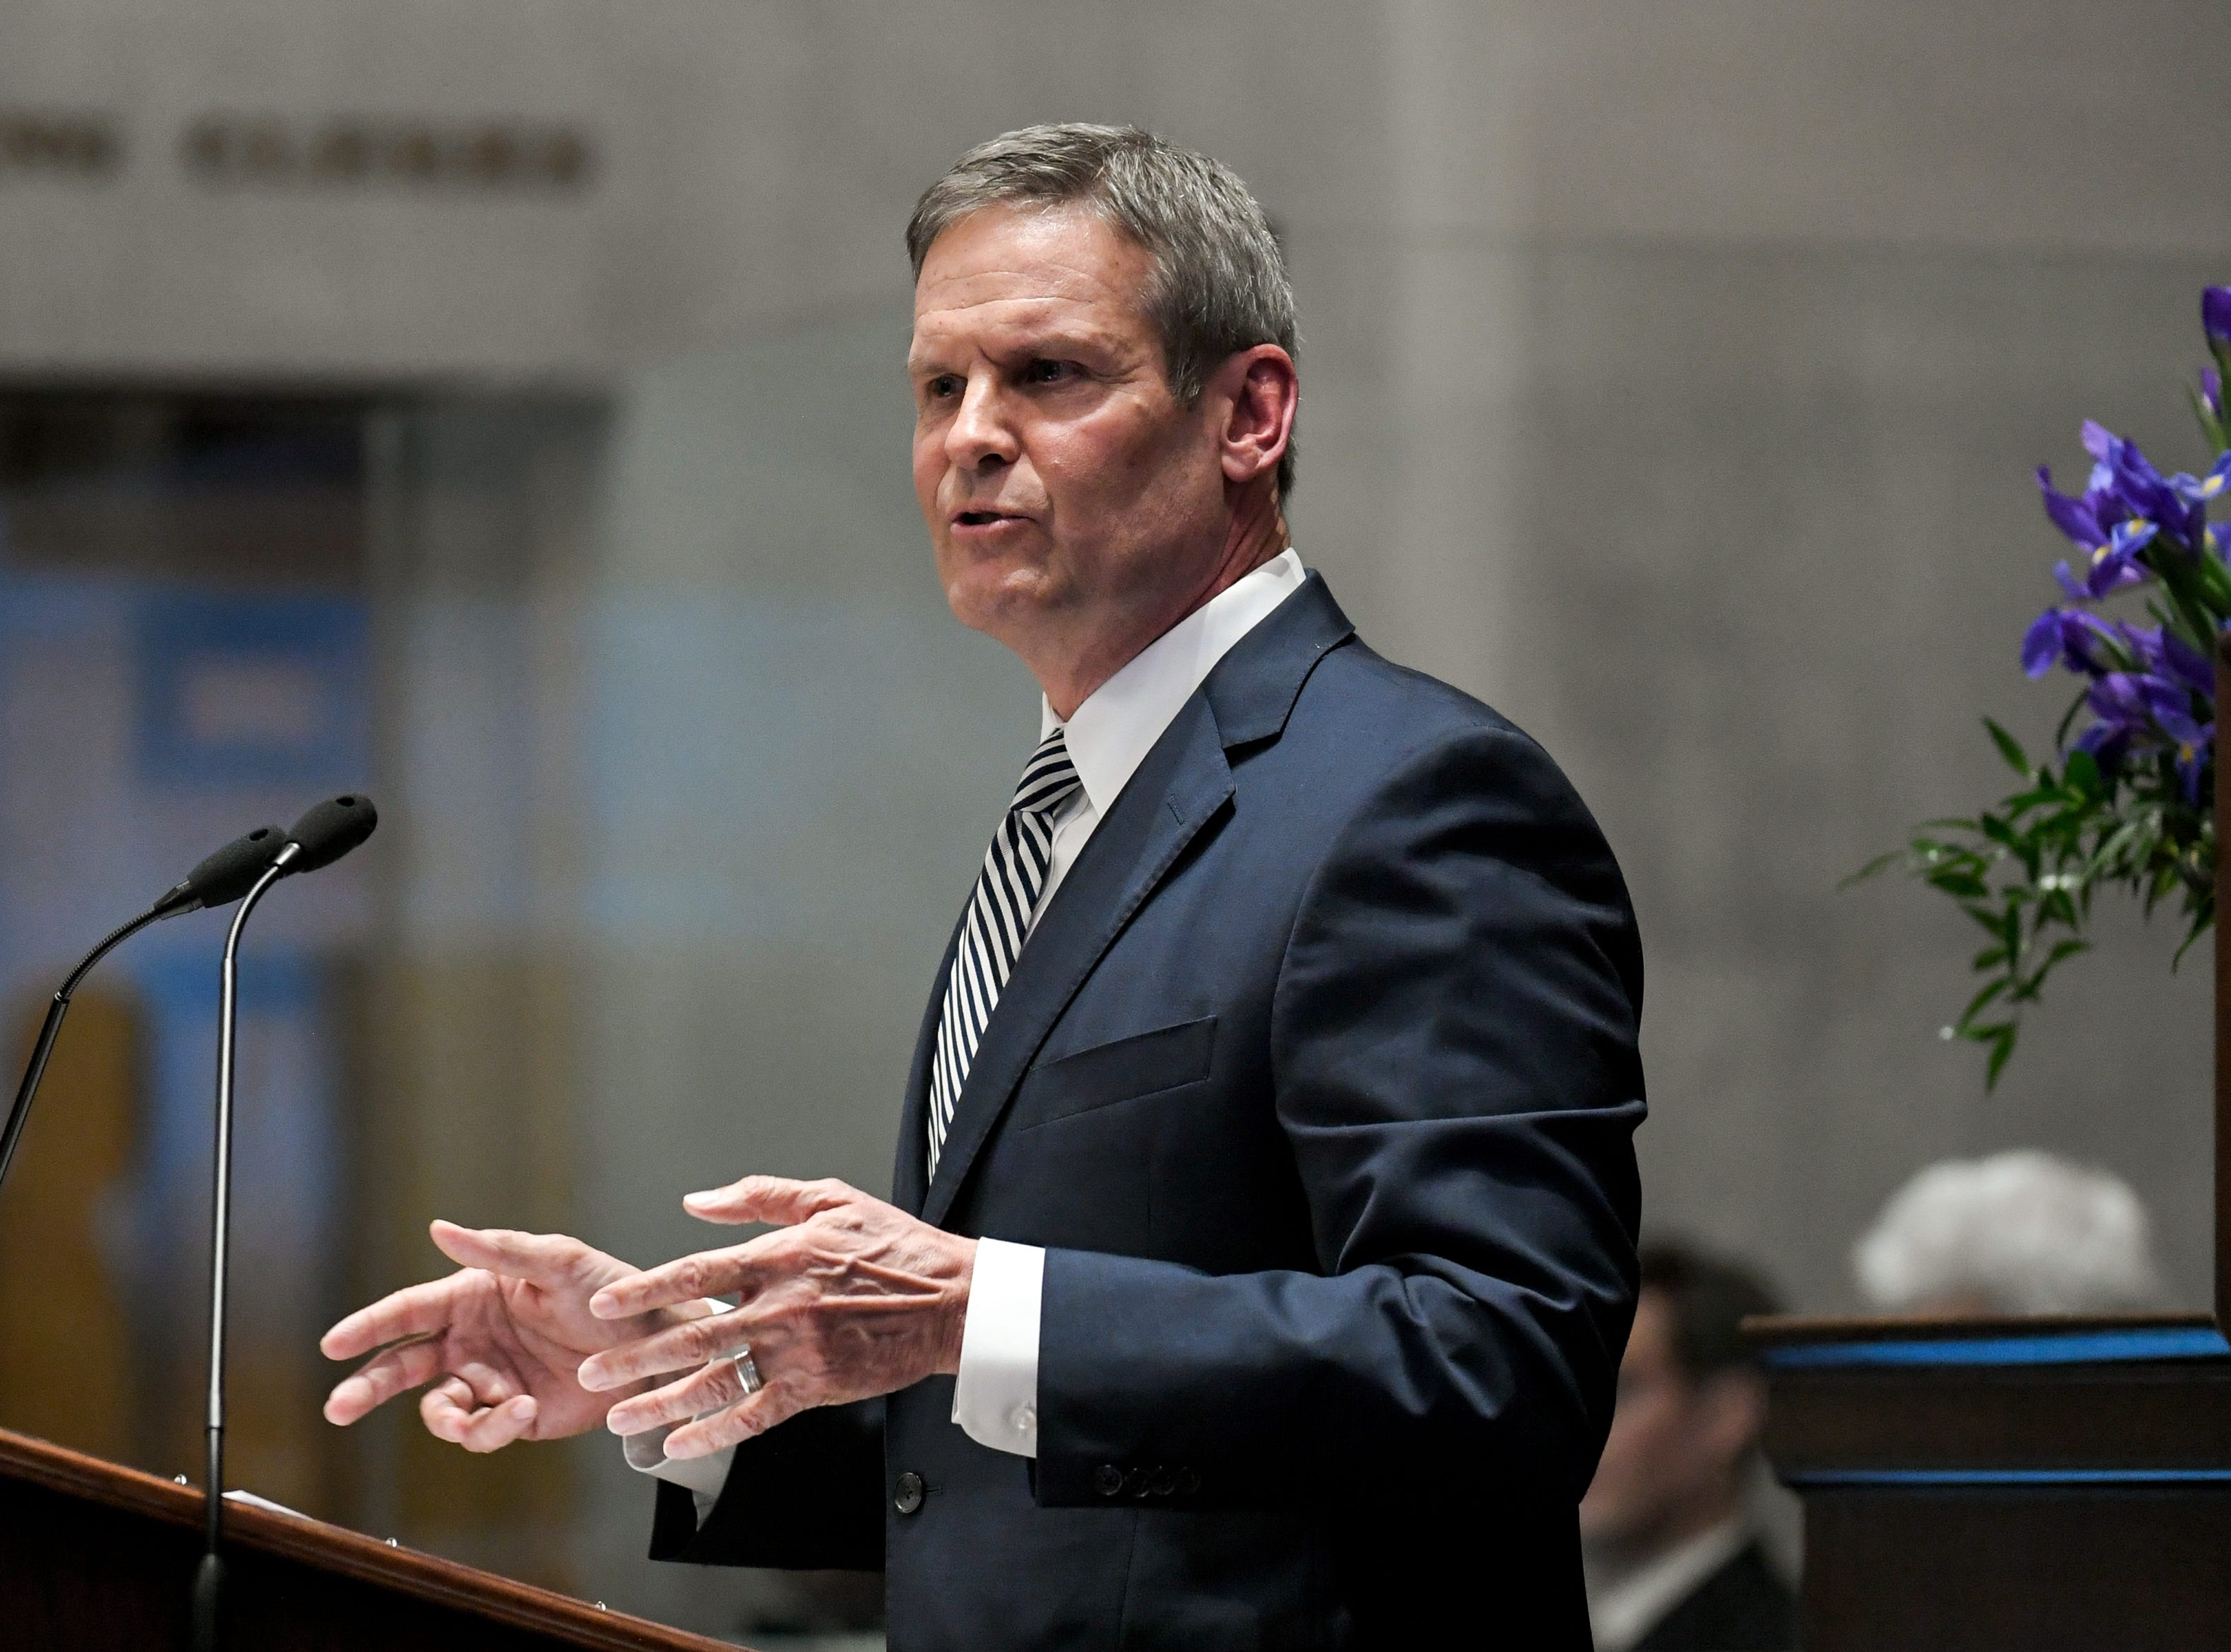 Gov. Bill Lee gives his first State of the State address before a joint session of the Tennessee General Assembly on March 4, 2019, inside the House chambers at the state Capitol.